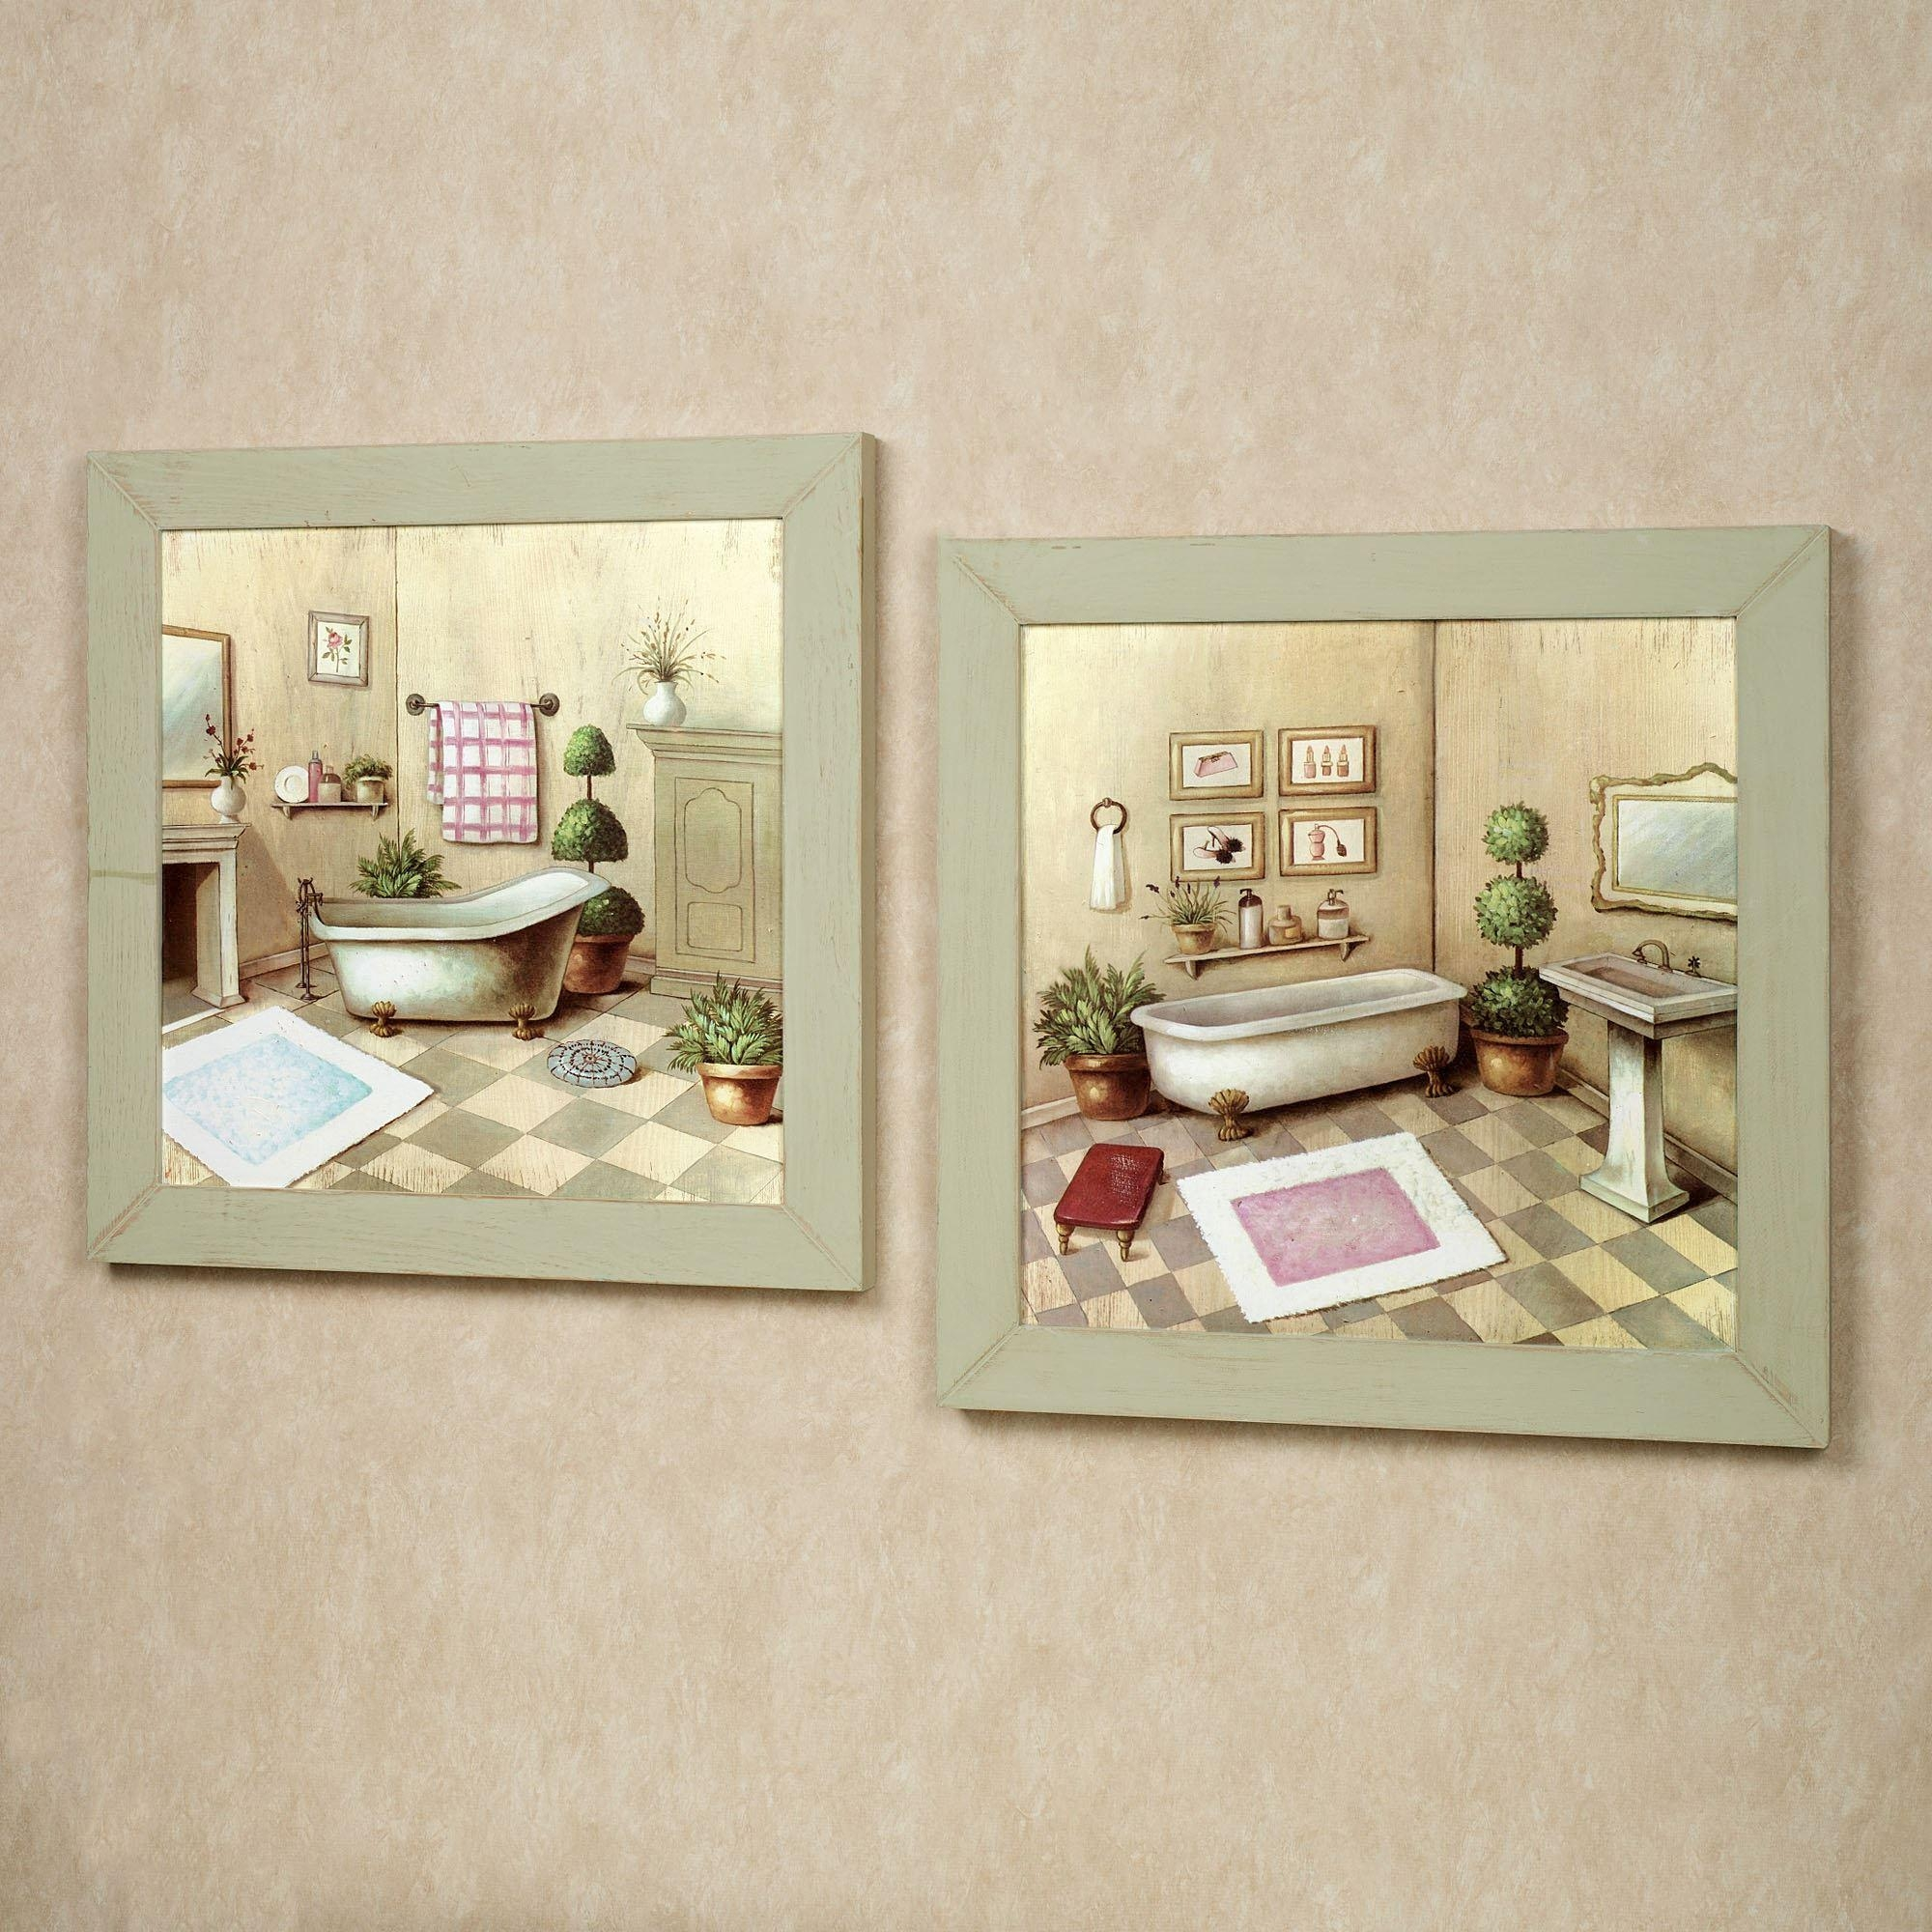 Chic Bathroom Wall Art For Unique Bathing E With Decor Decorations In Country French Wall Art (Image 6 of 20)